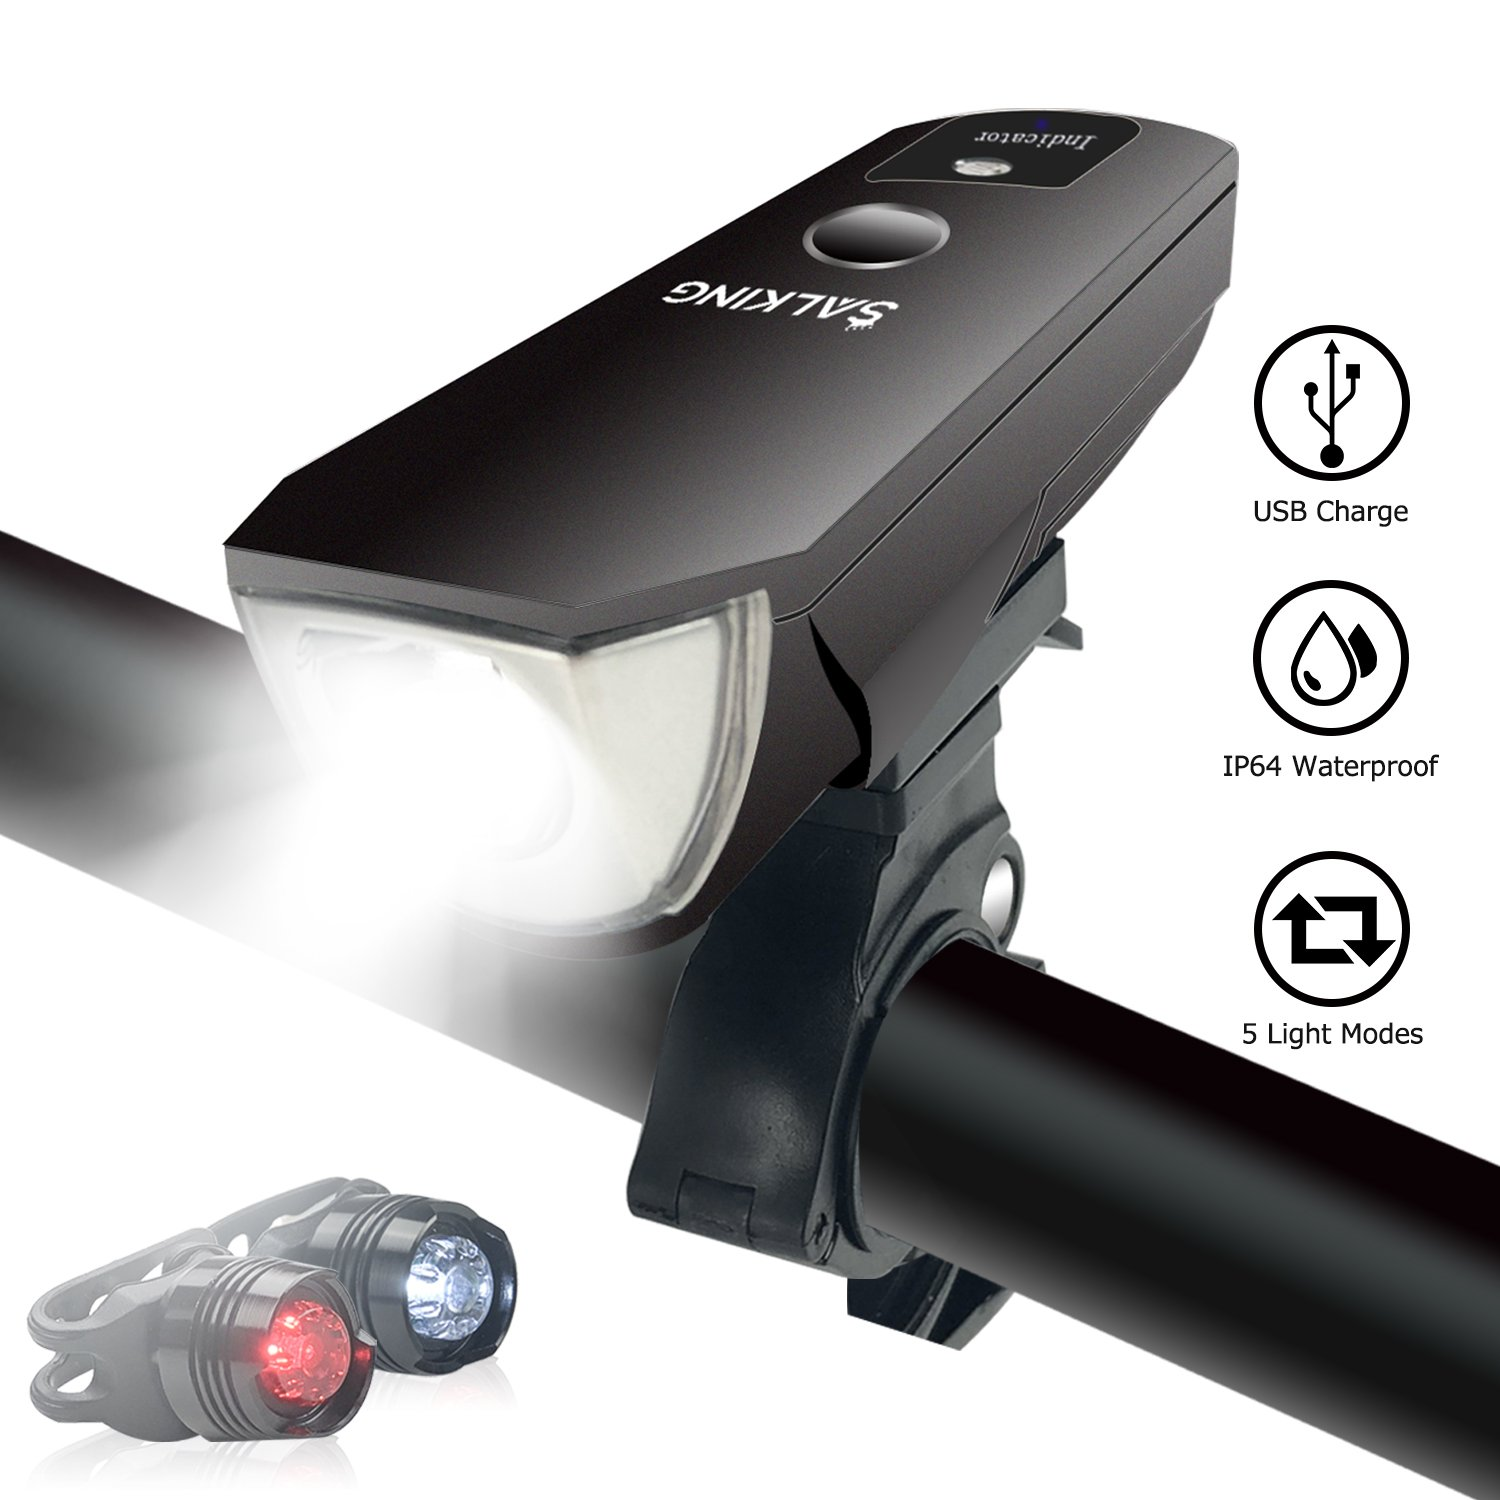 Bike Light,USB Rechargeable Bike Lights Set,Mountain Front and Rear Light,LED Headlight Taillight Combinations,5 Light Modes,Waterproof Smart Sensors Super Powerful Lamp for Road Cycling Flashlight